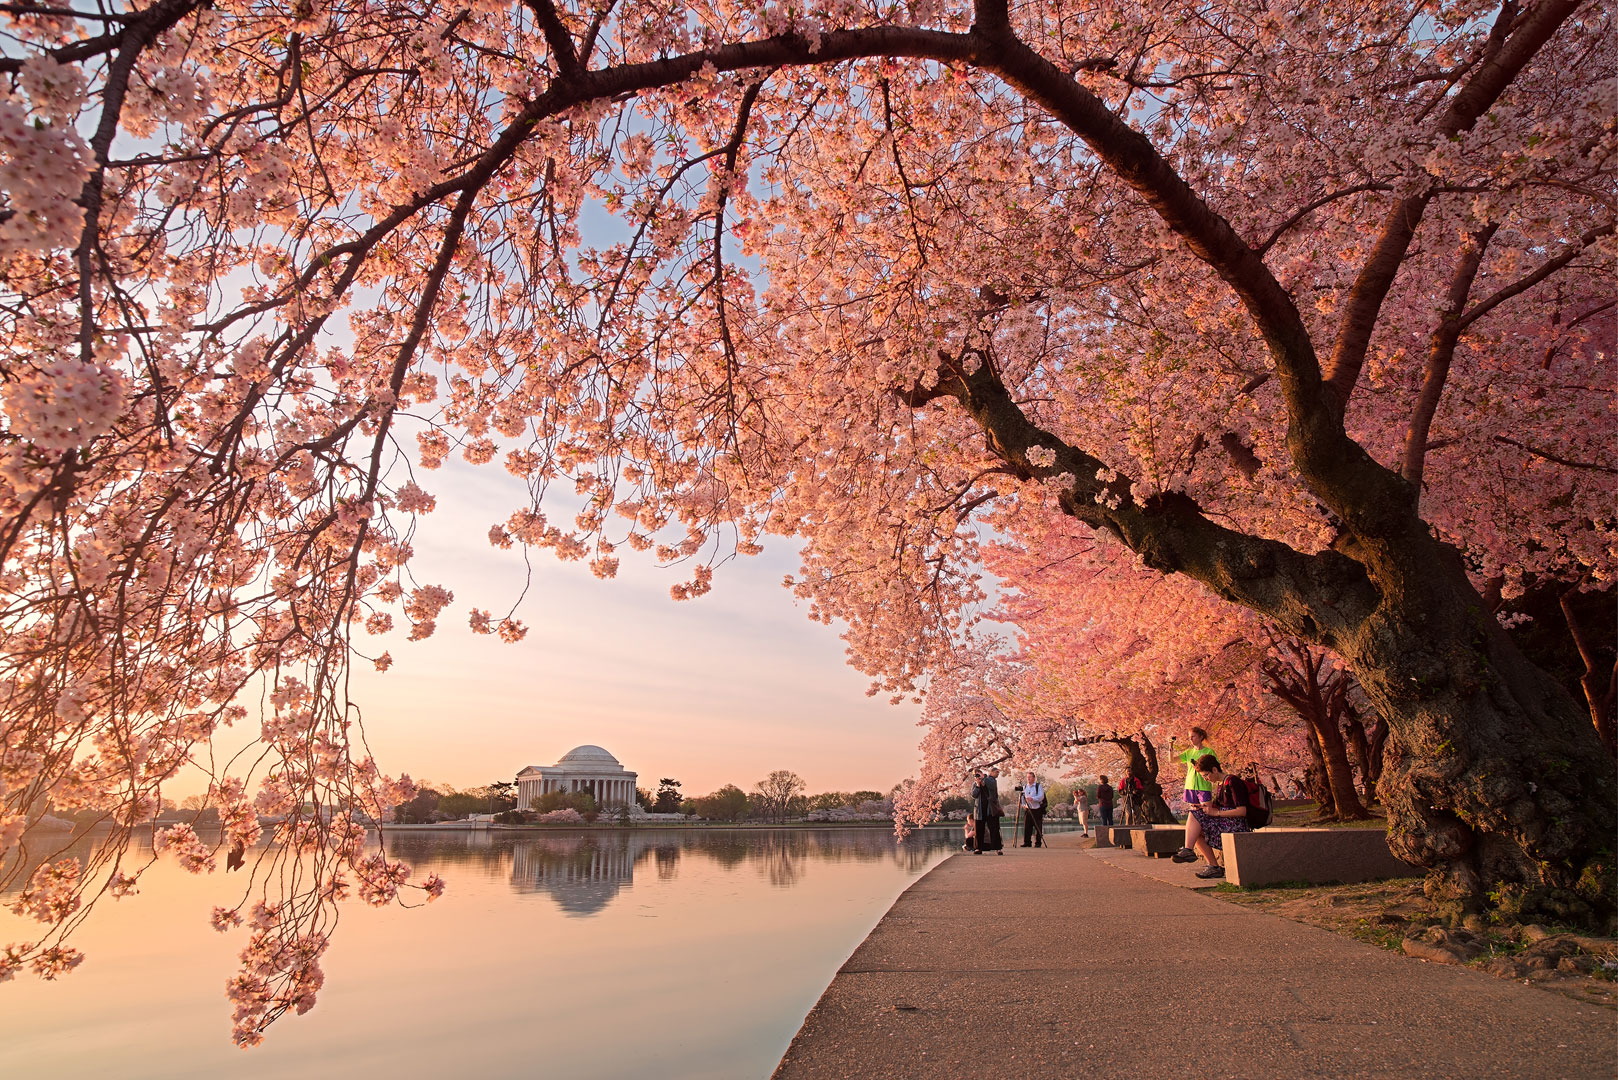 Spring Awakening, Washington DC, cherry blossom, blossoms, tidal basin, spring, april, pink, solitude, walkway, quiet, bernard chen, timescapes, photo